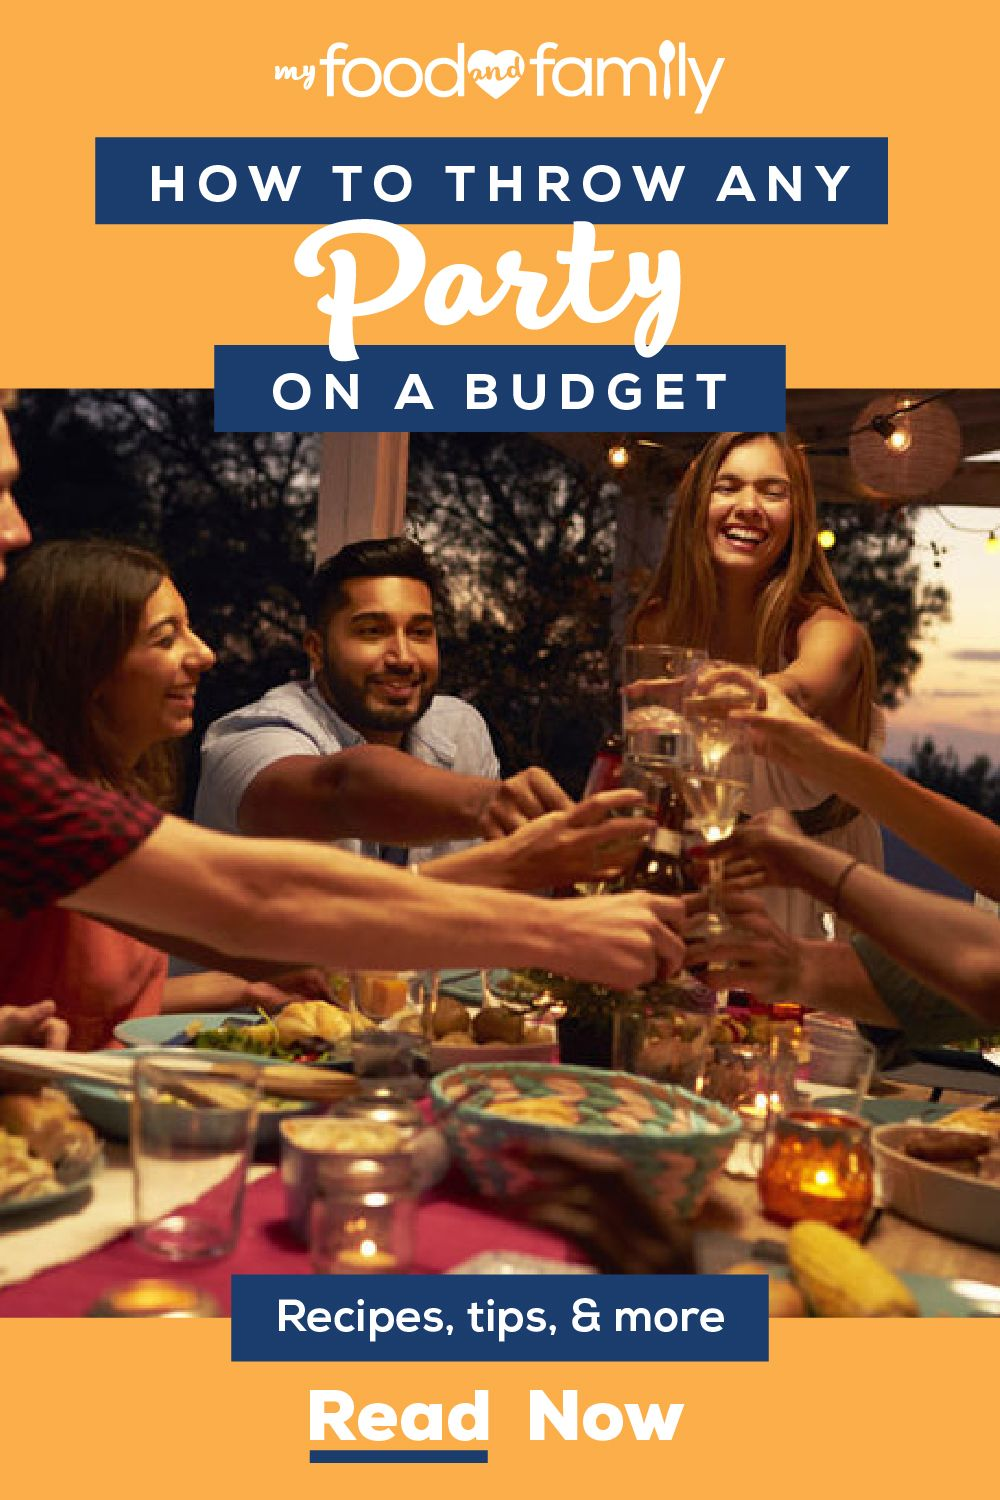 How to Throw Any Party on a Budget